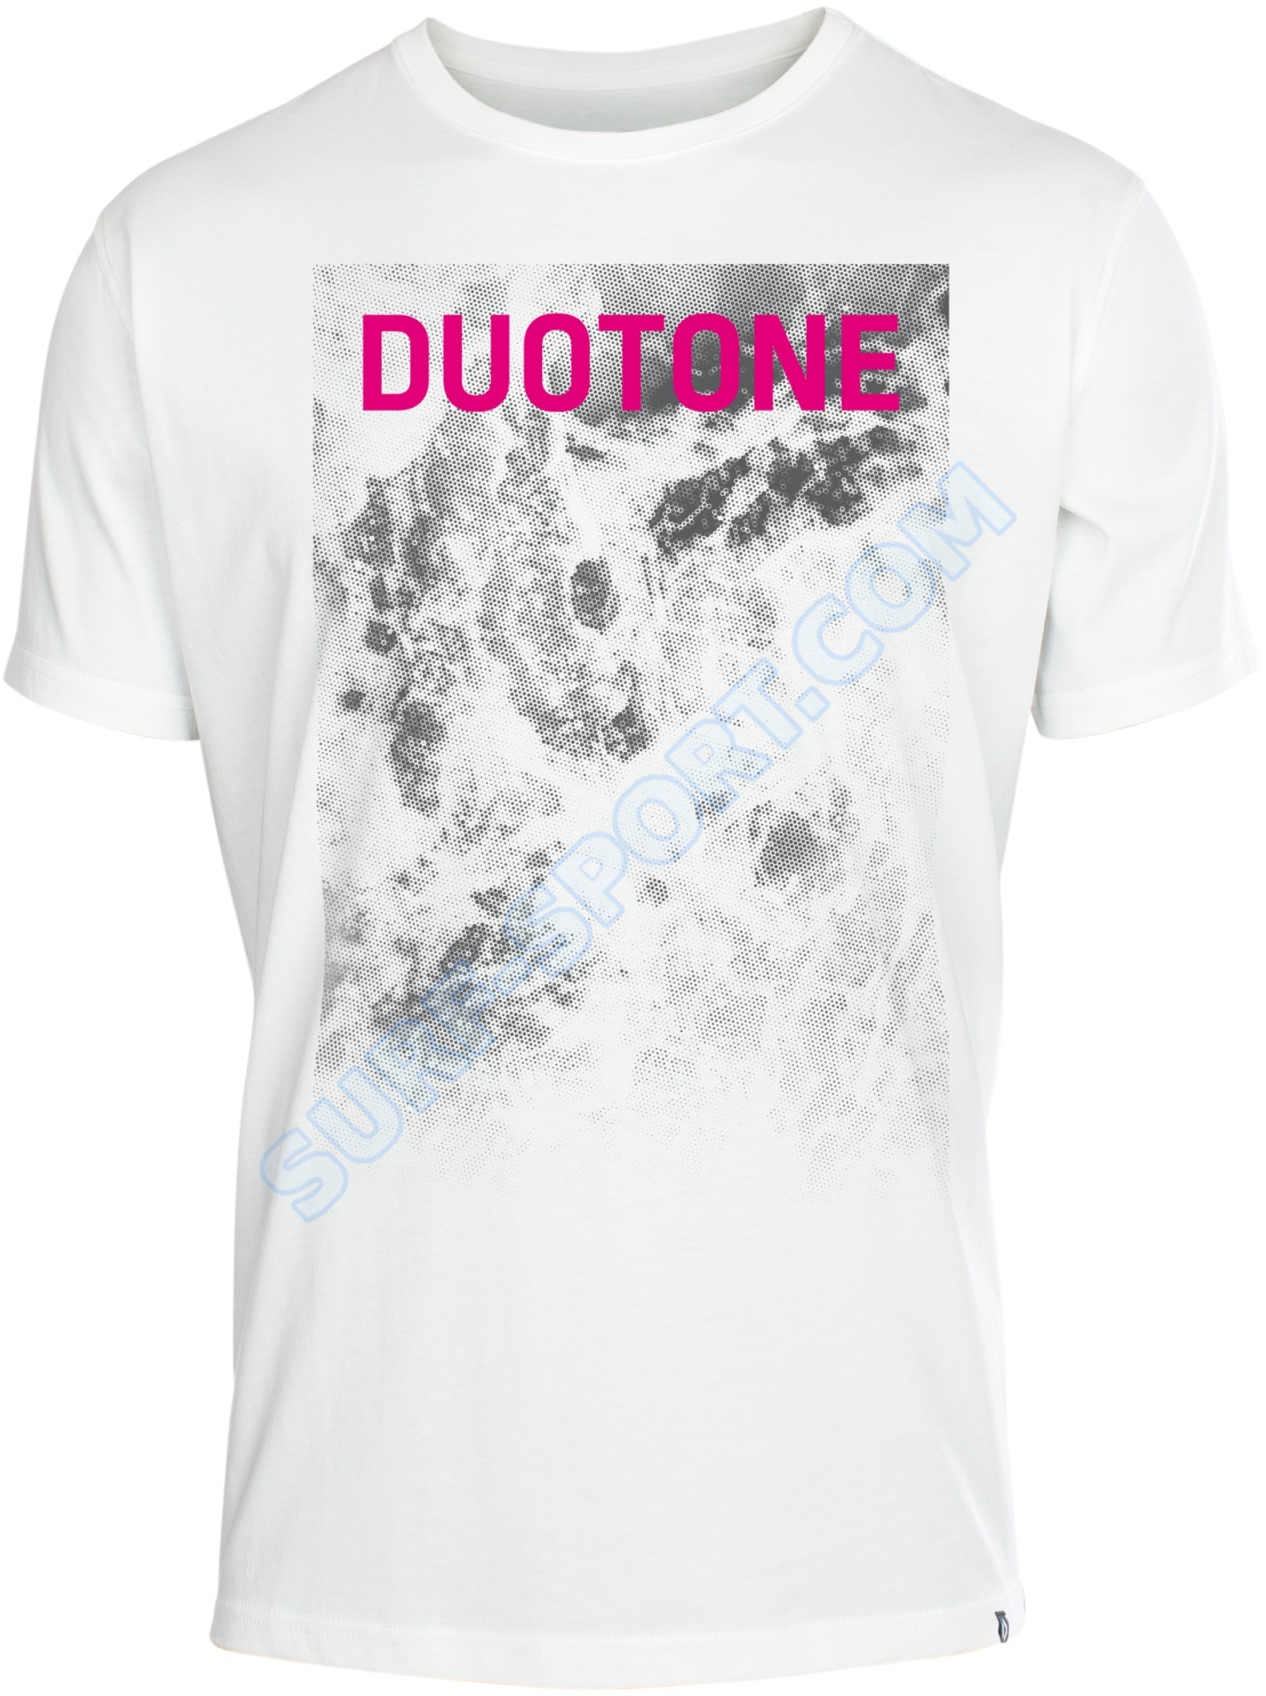 44902-5008_Duotone T-shirt-Rasterized-White-front.png